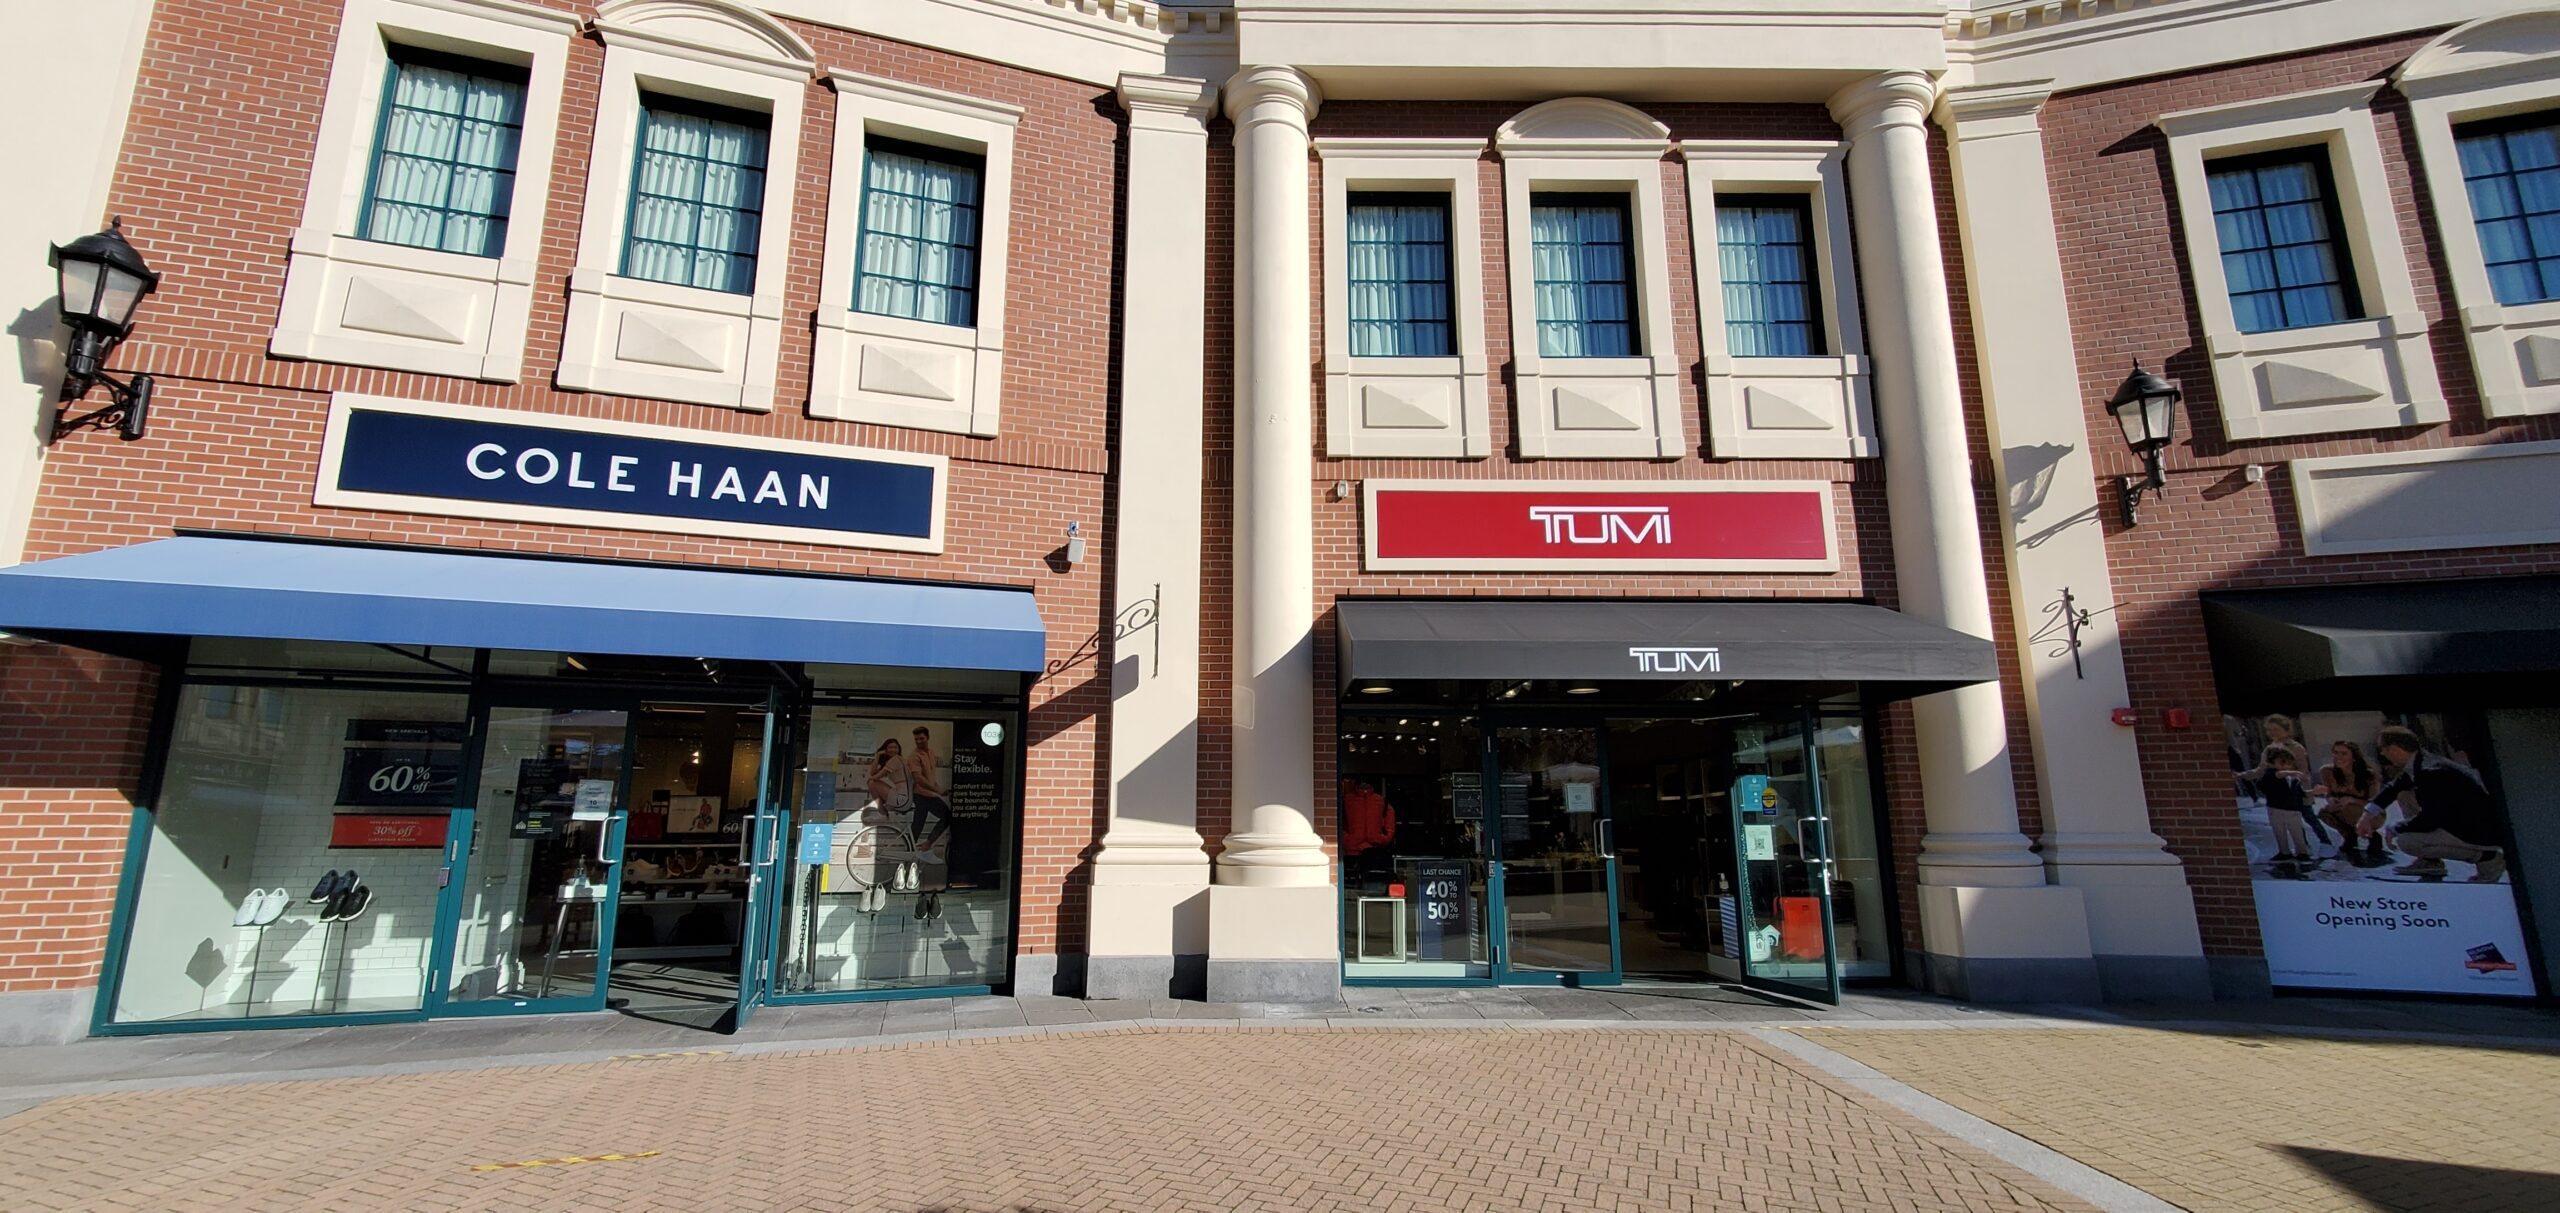 Cole Haan and TUMI at McArthur Glen Vancouver